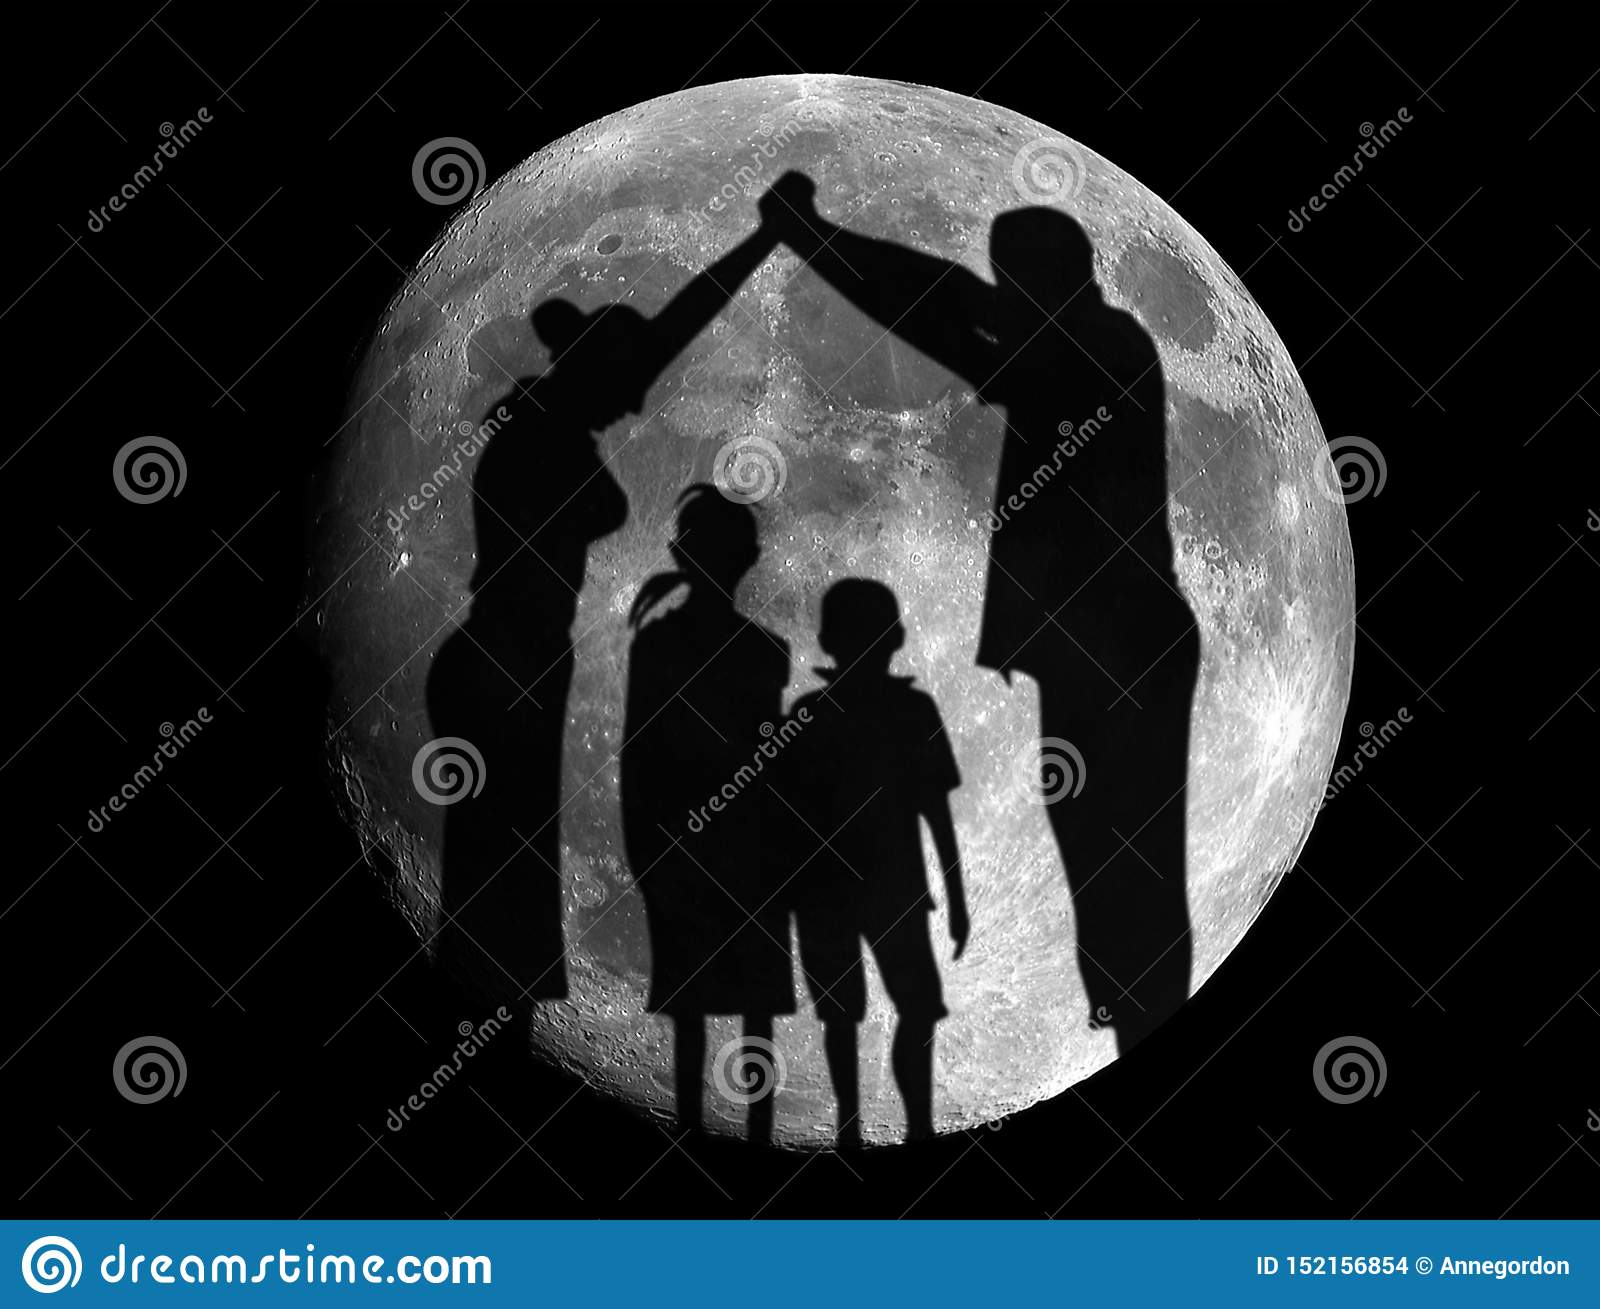 View of carefree family having fun in Moon Eclipse